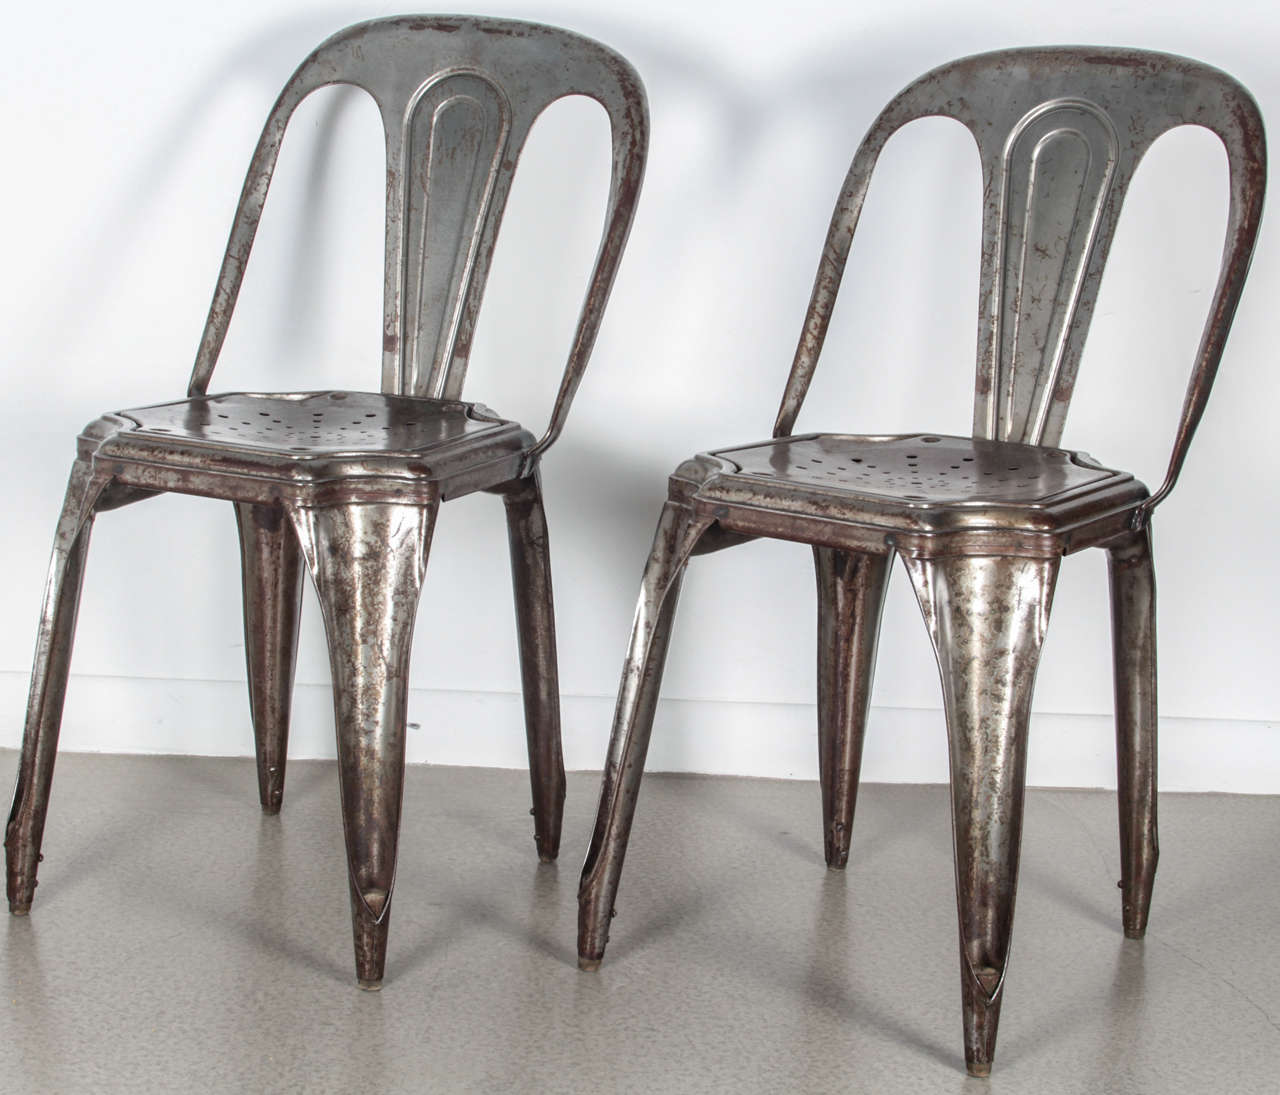 Beau Set Of Four Vintage Metal Tolix Chairs. These Are Not Reproductions. The  Chairs Have